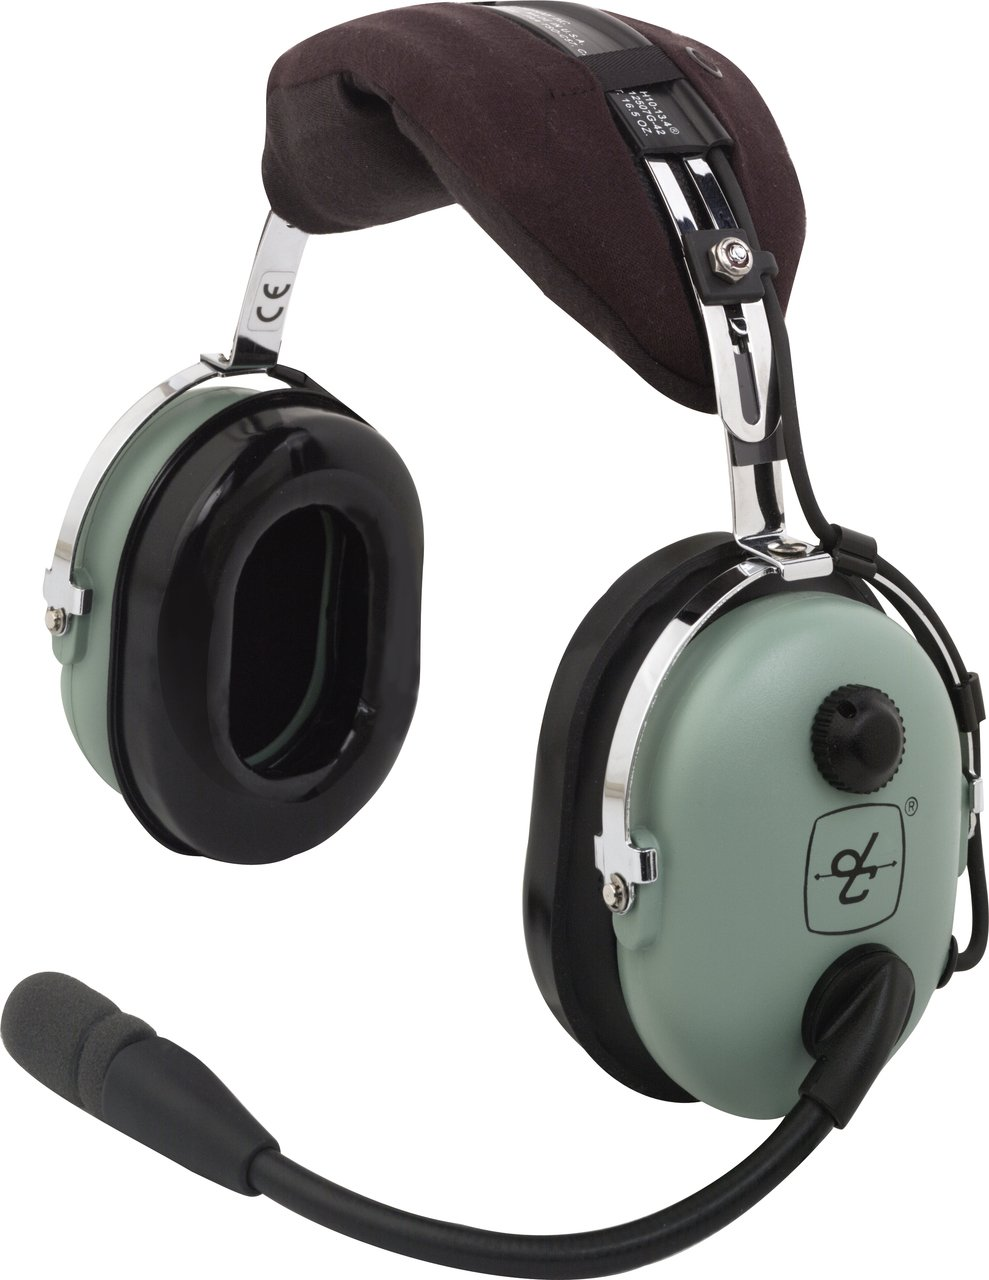 David Clark H10-13S Stereo Headset by David Clark